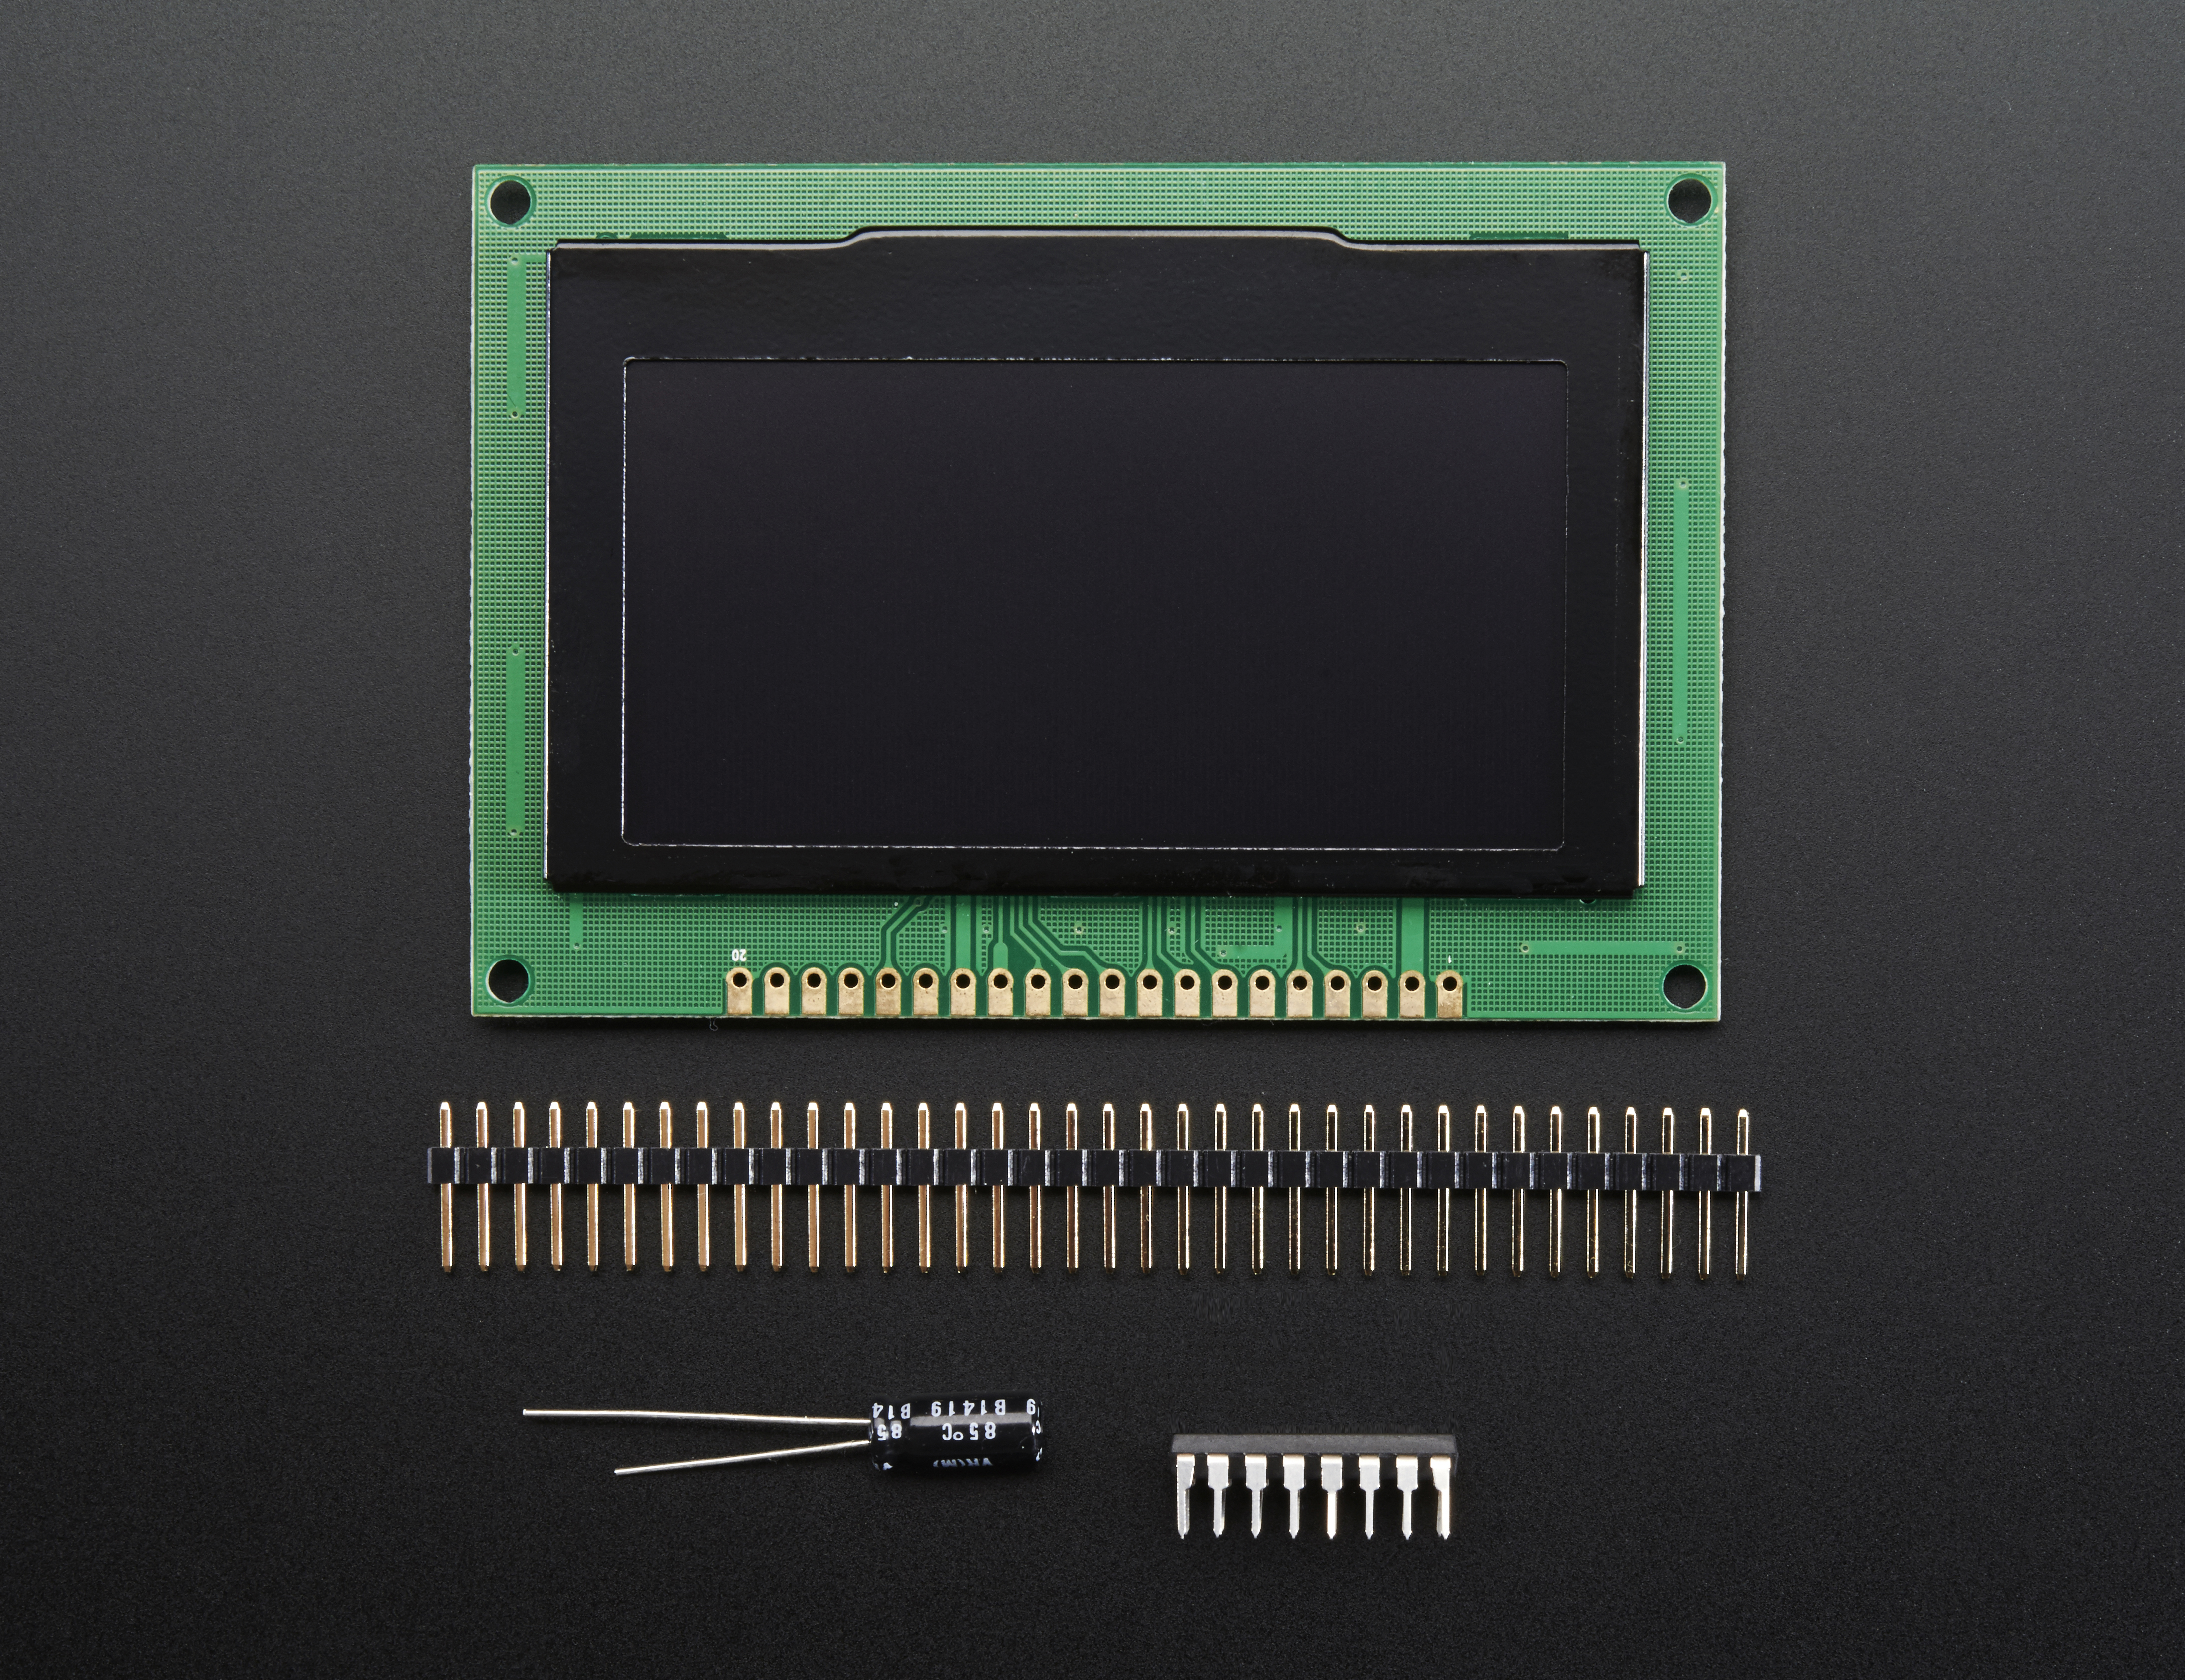 adafruit_products_2674_kit_ORIG.jpg